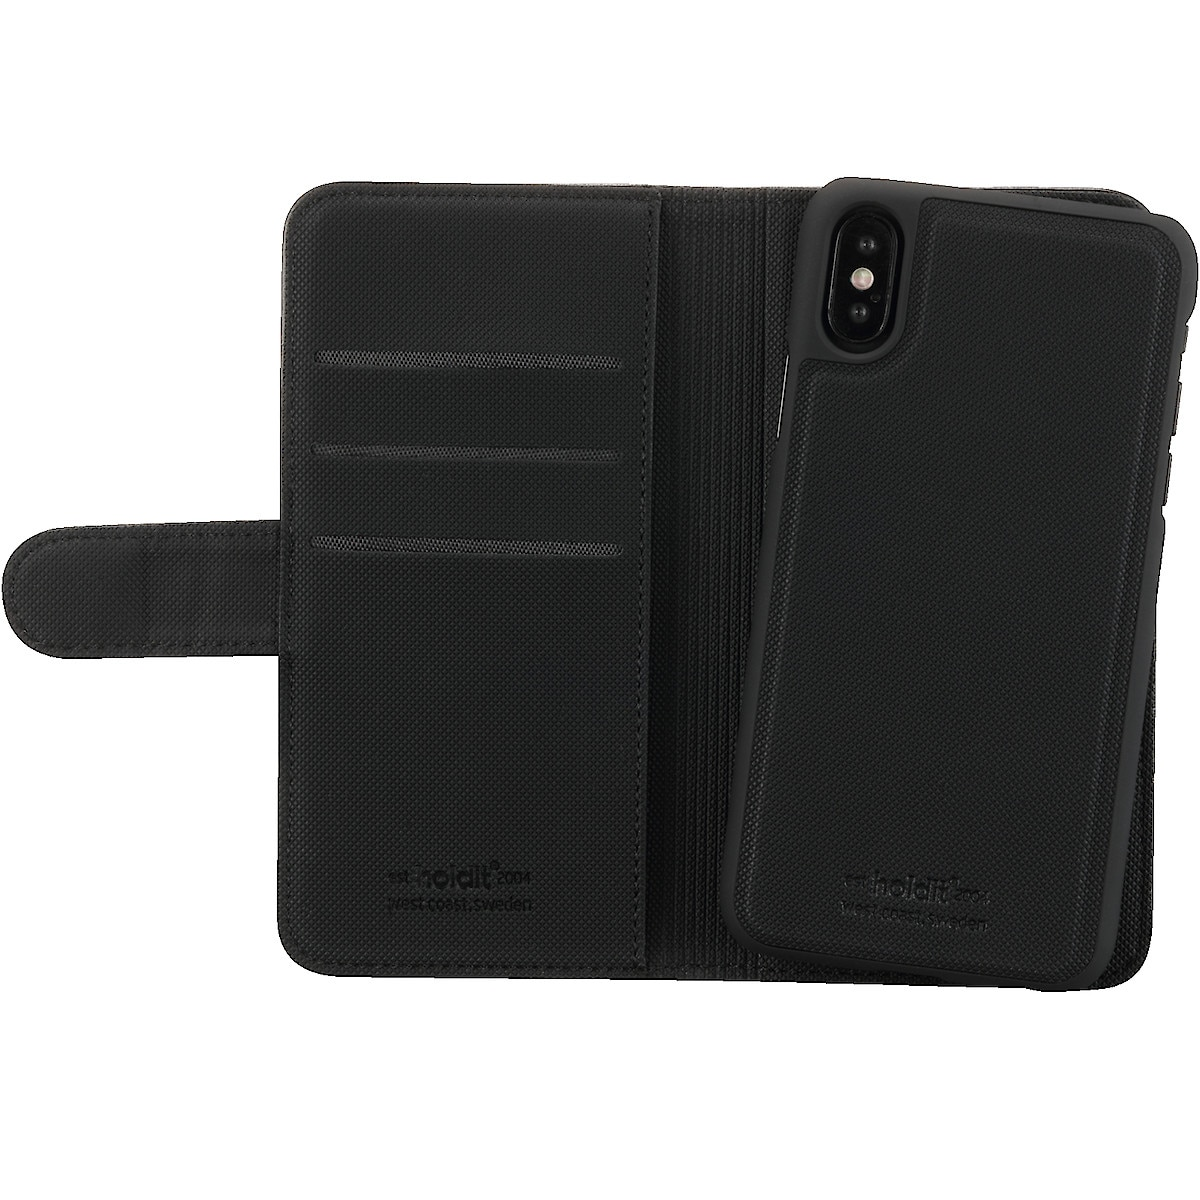 Holdit Wallet Case for iPhone X/XS